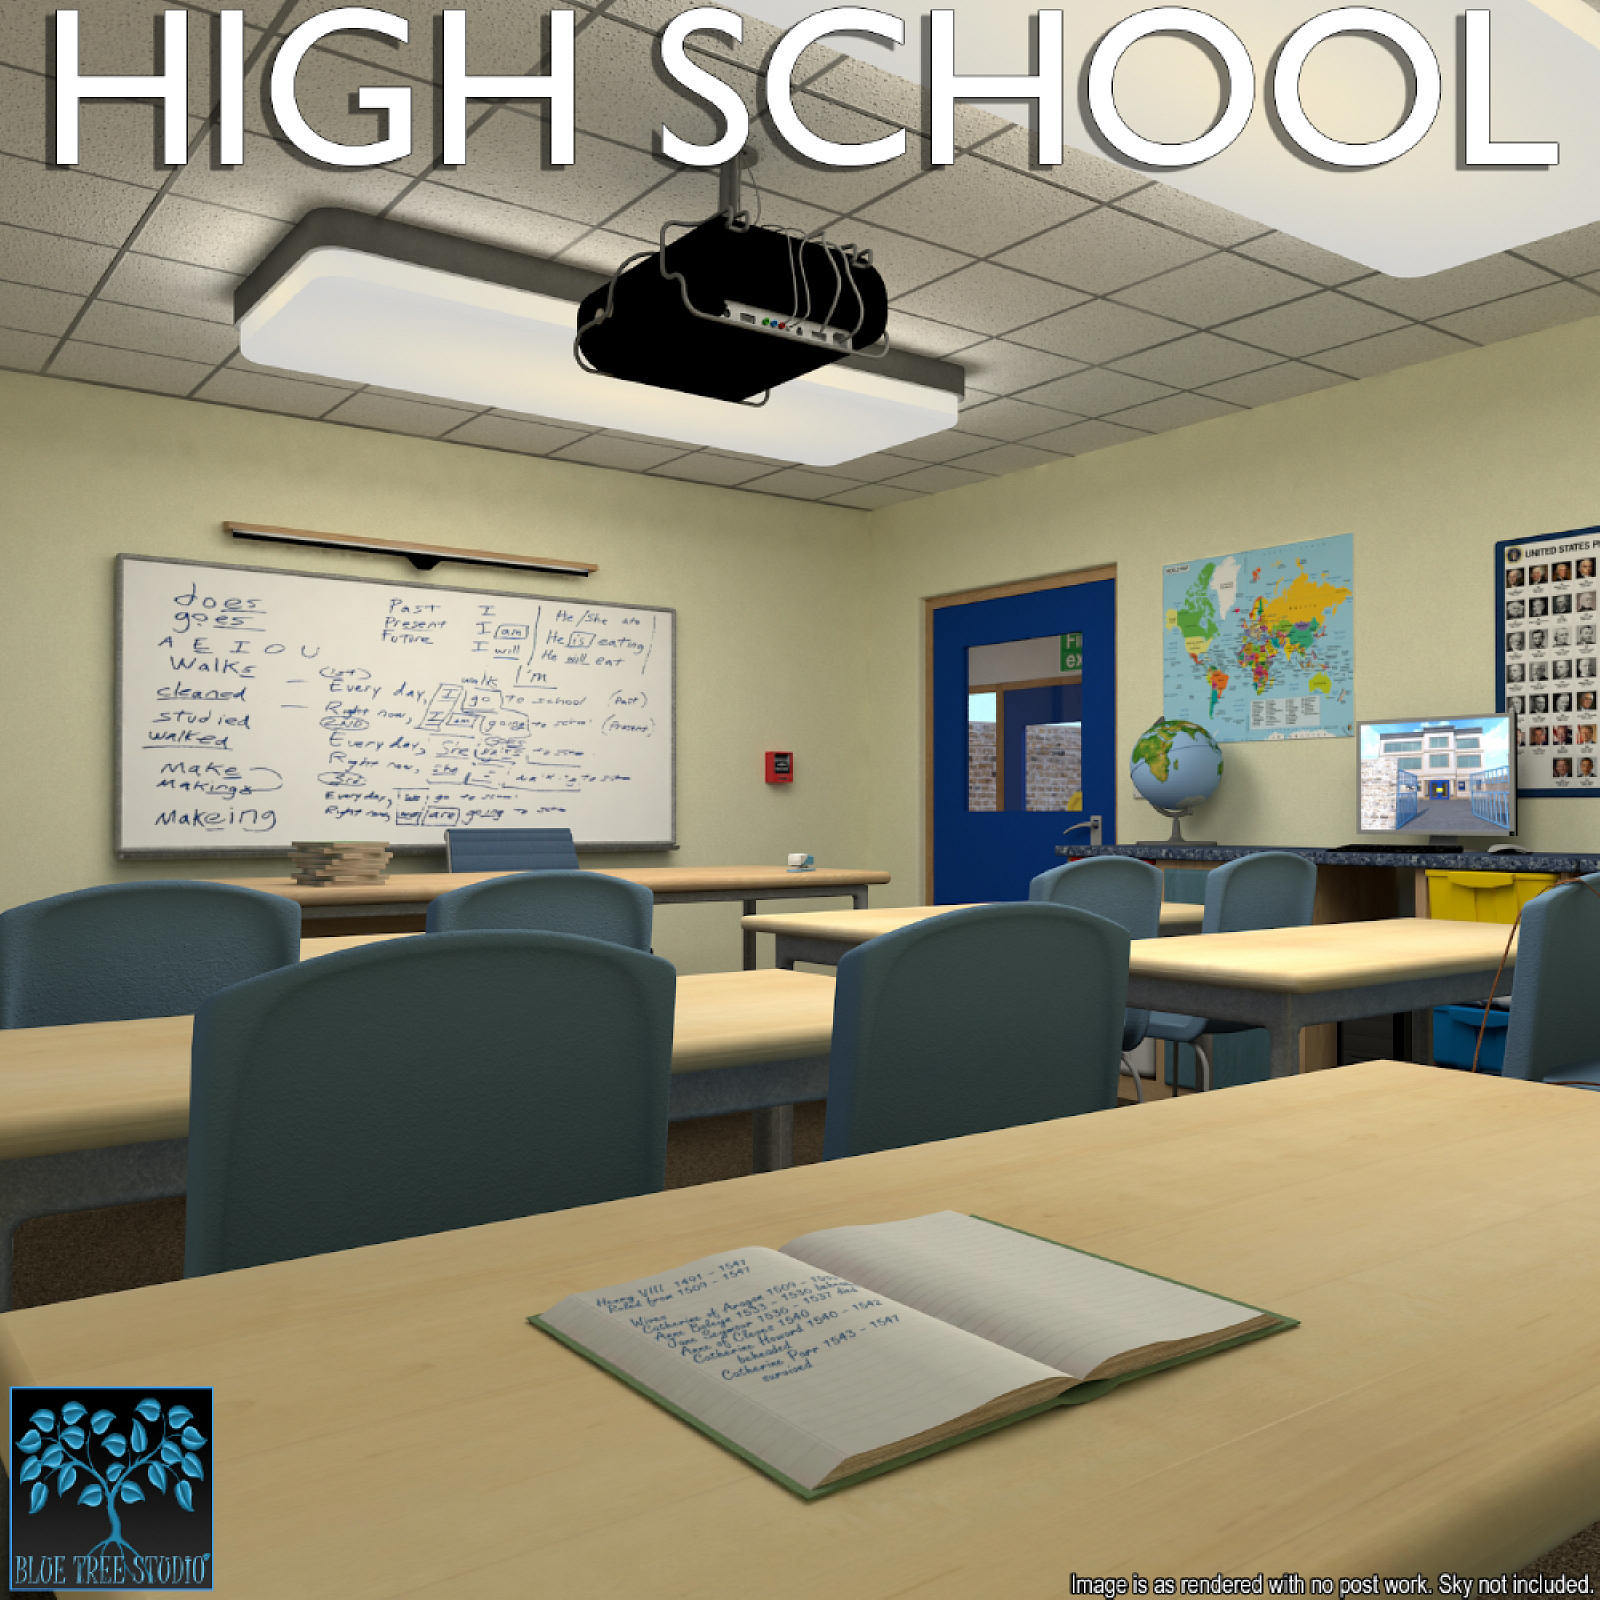 High School for Poser by BlueTreeStudio